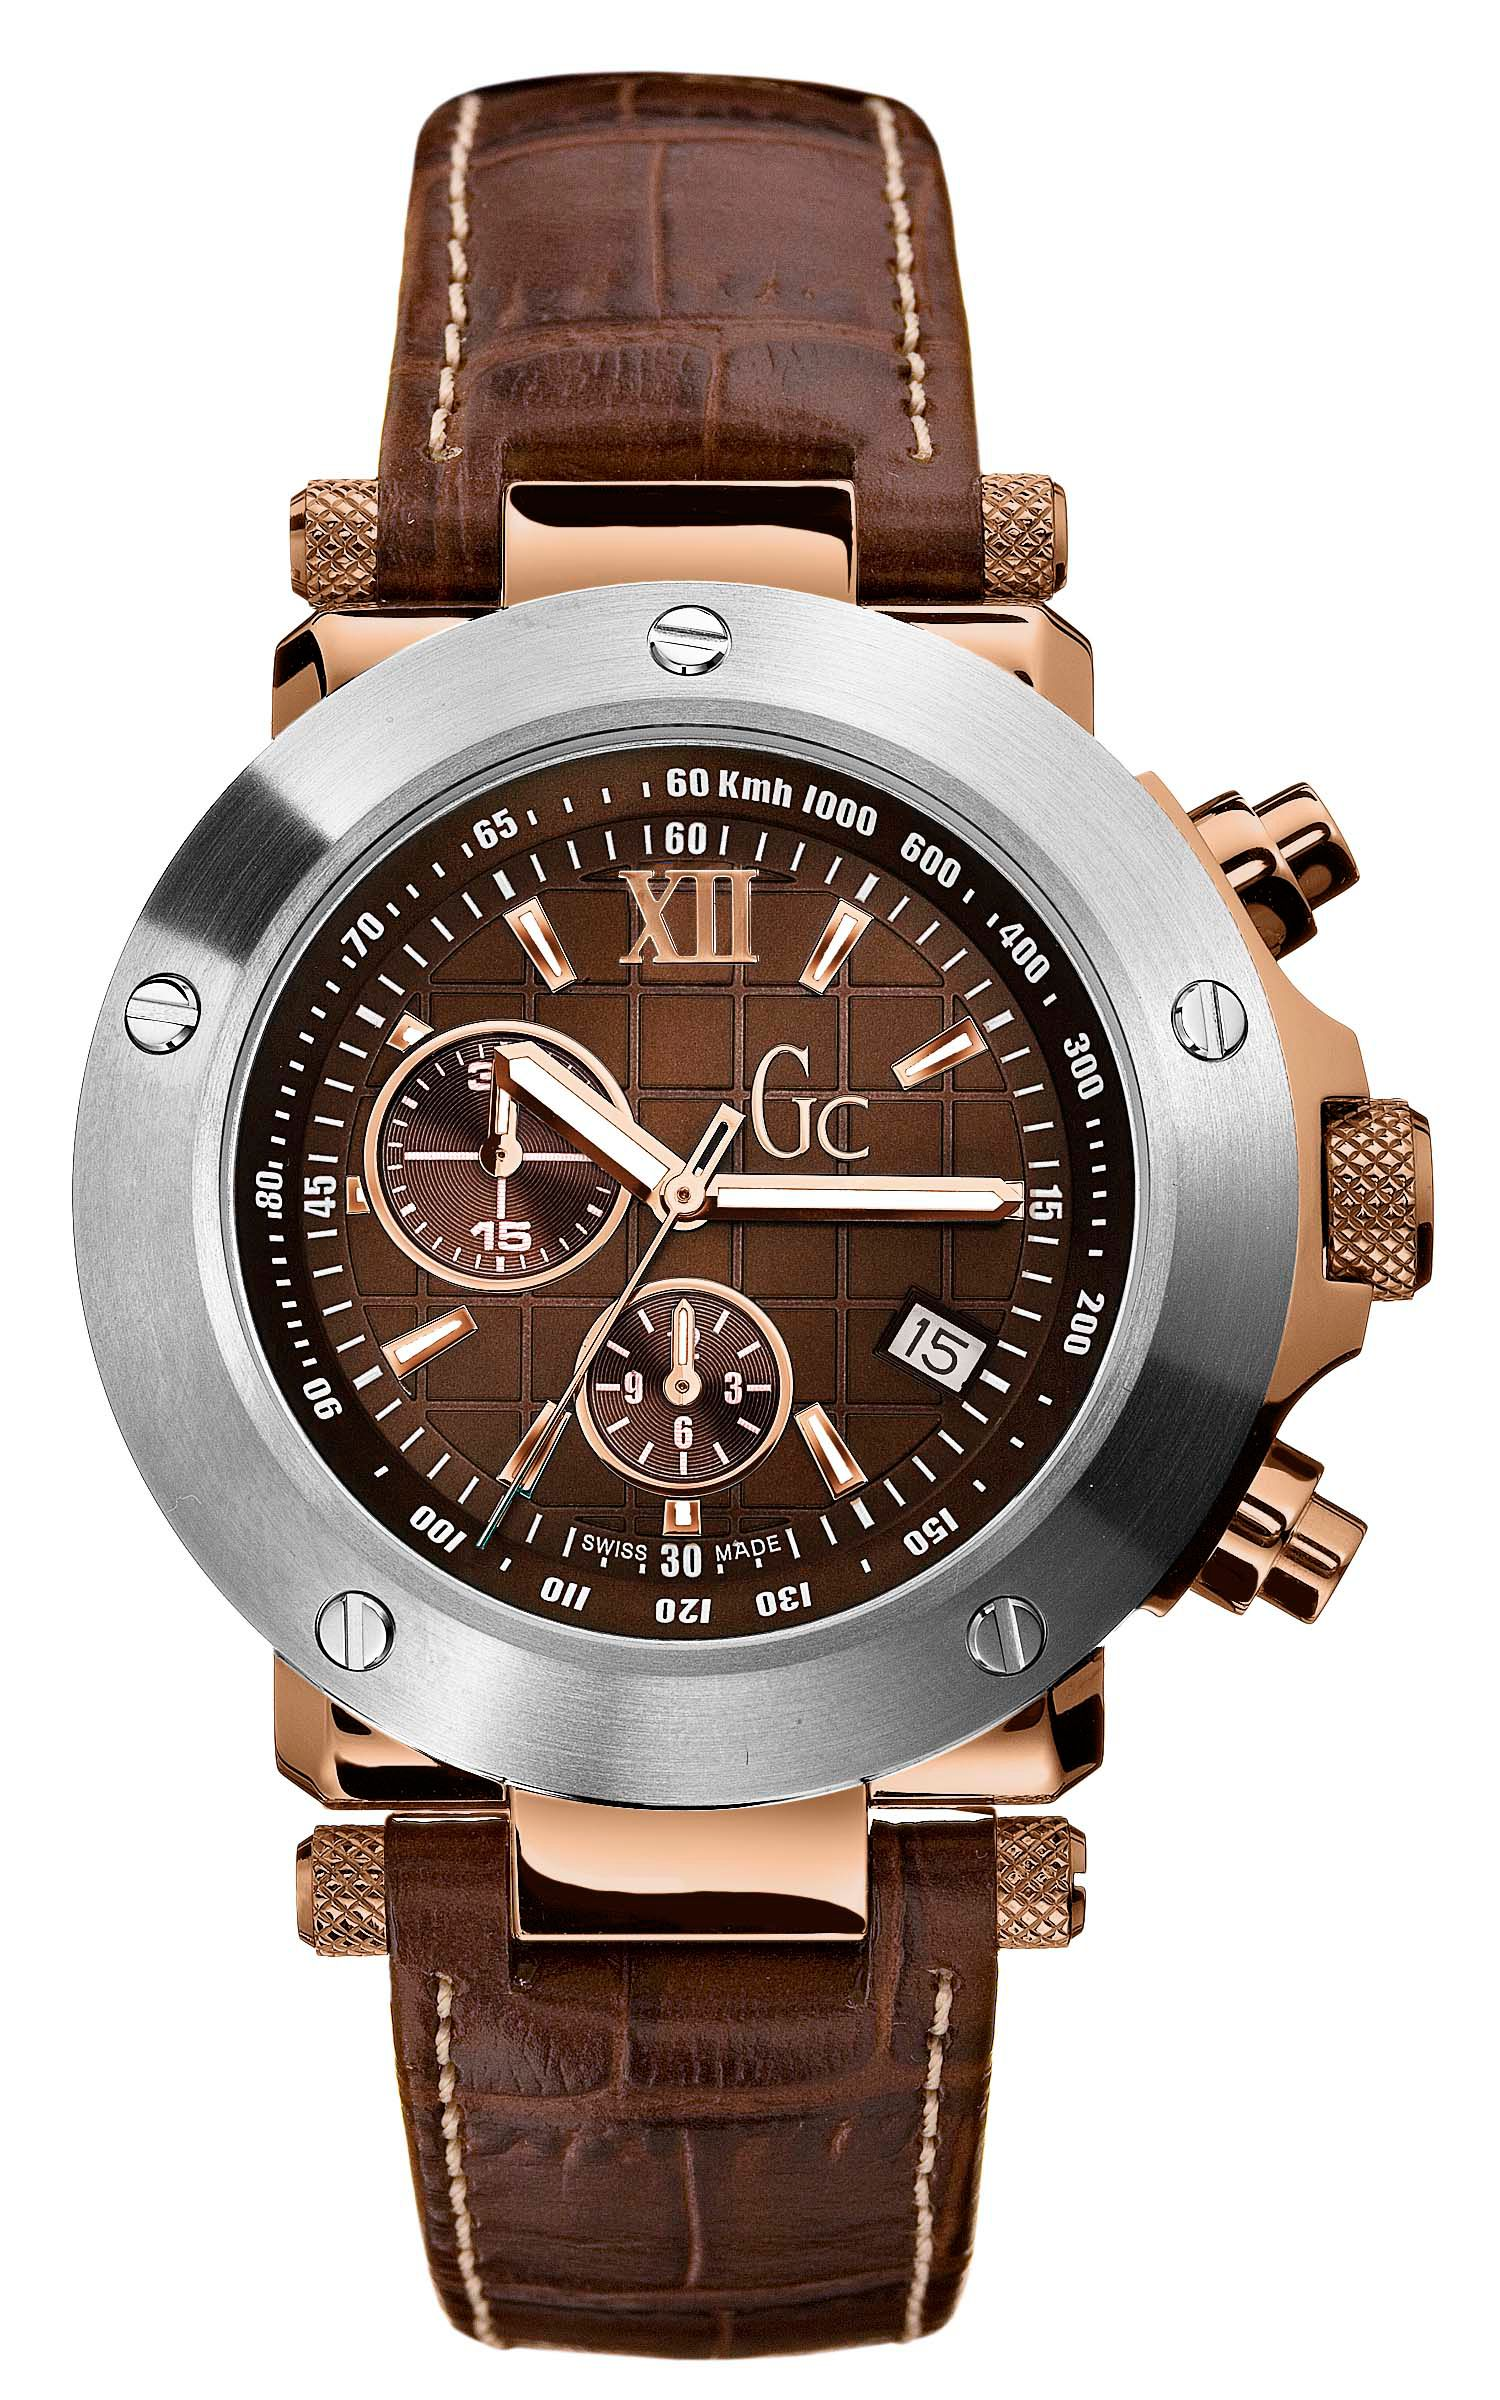 Gc gents chronograph se1 sports watch product image